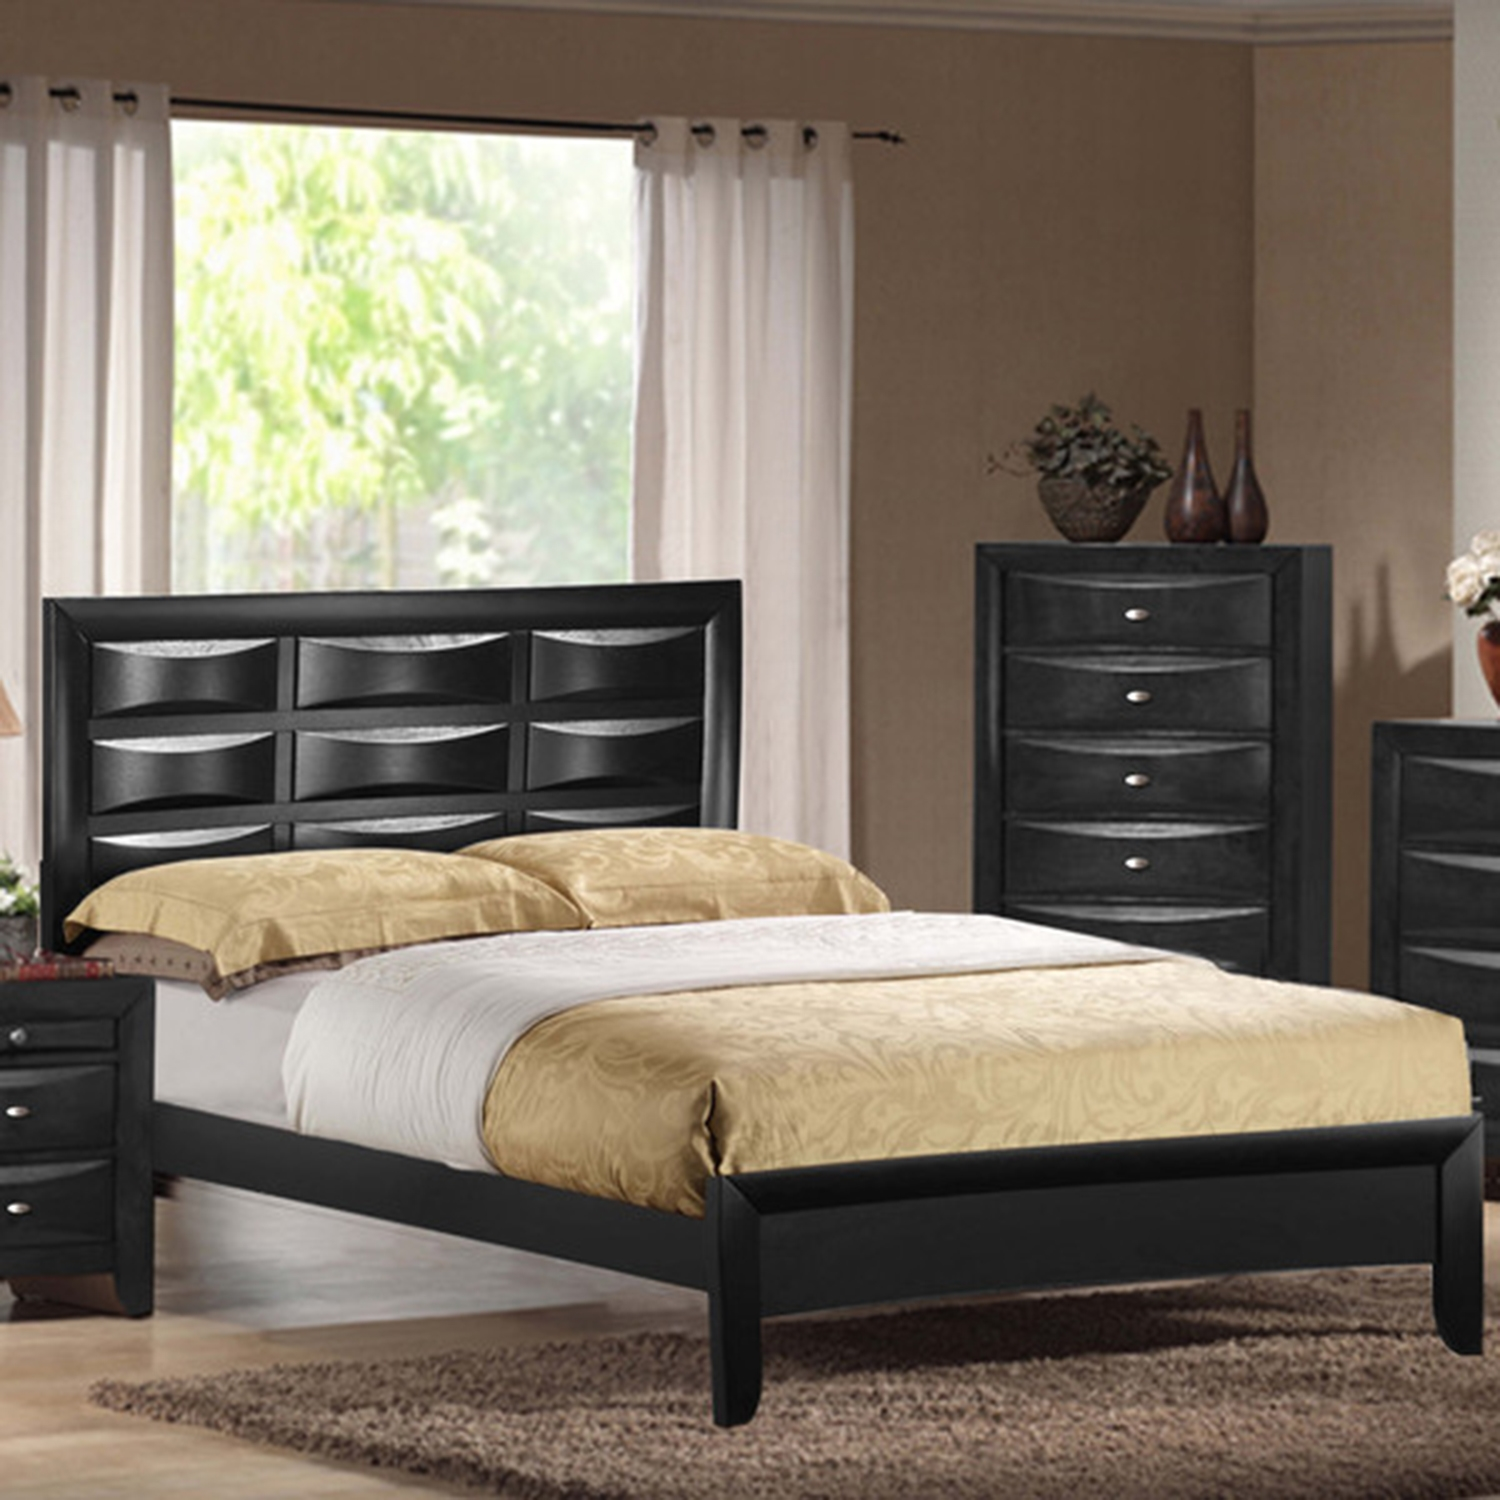 Livia Bed, Black - GLO-LIVIA-BL-BX-BED